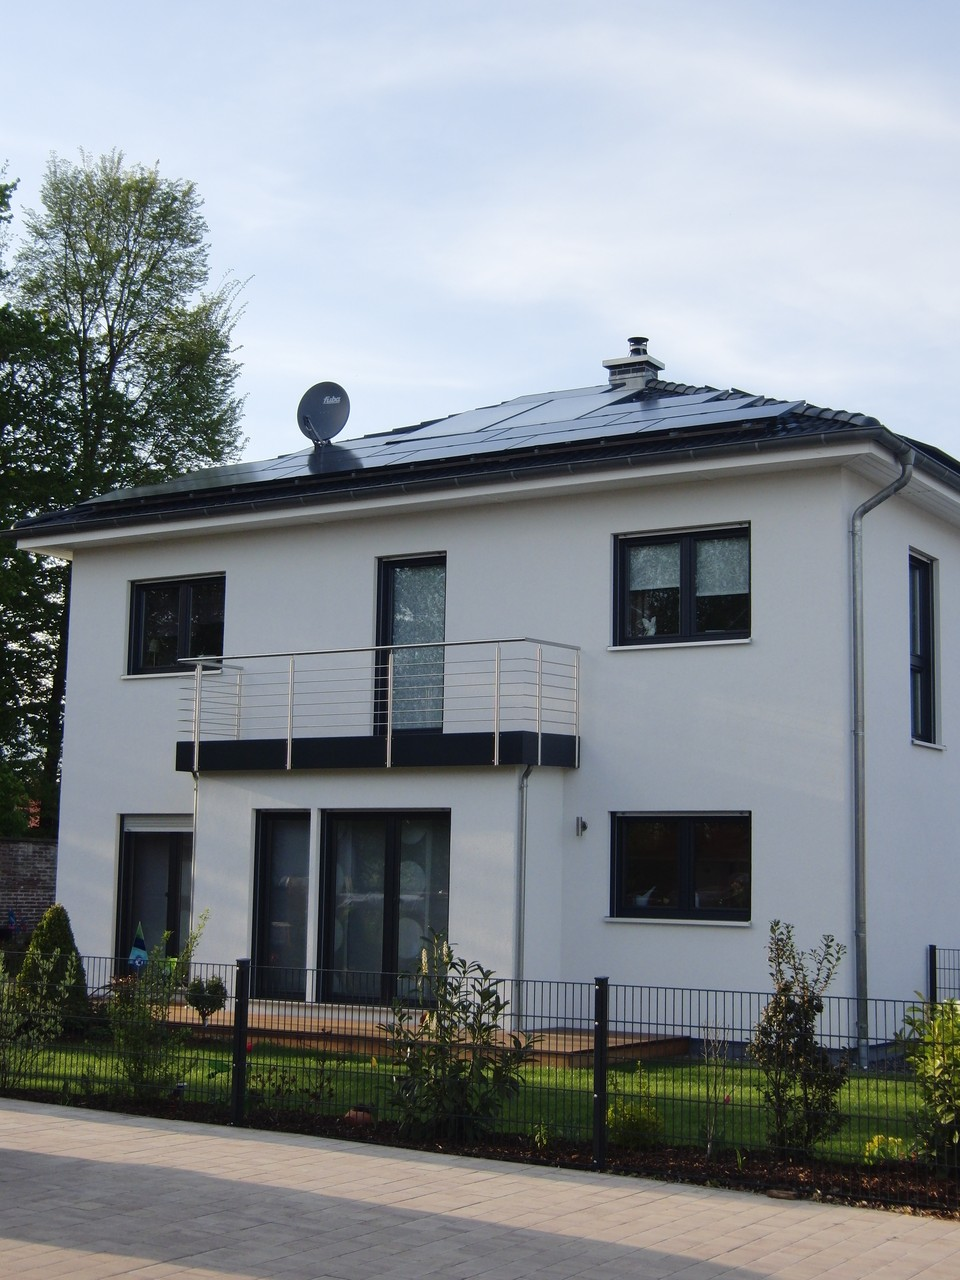 7,41 kWp in 93098 Rosenhof/Mintraching ET Solar Black